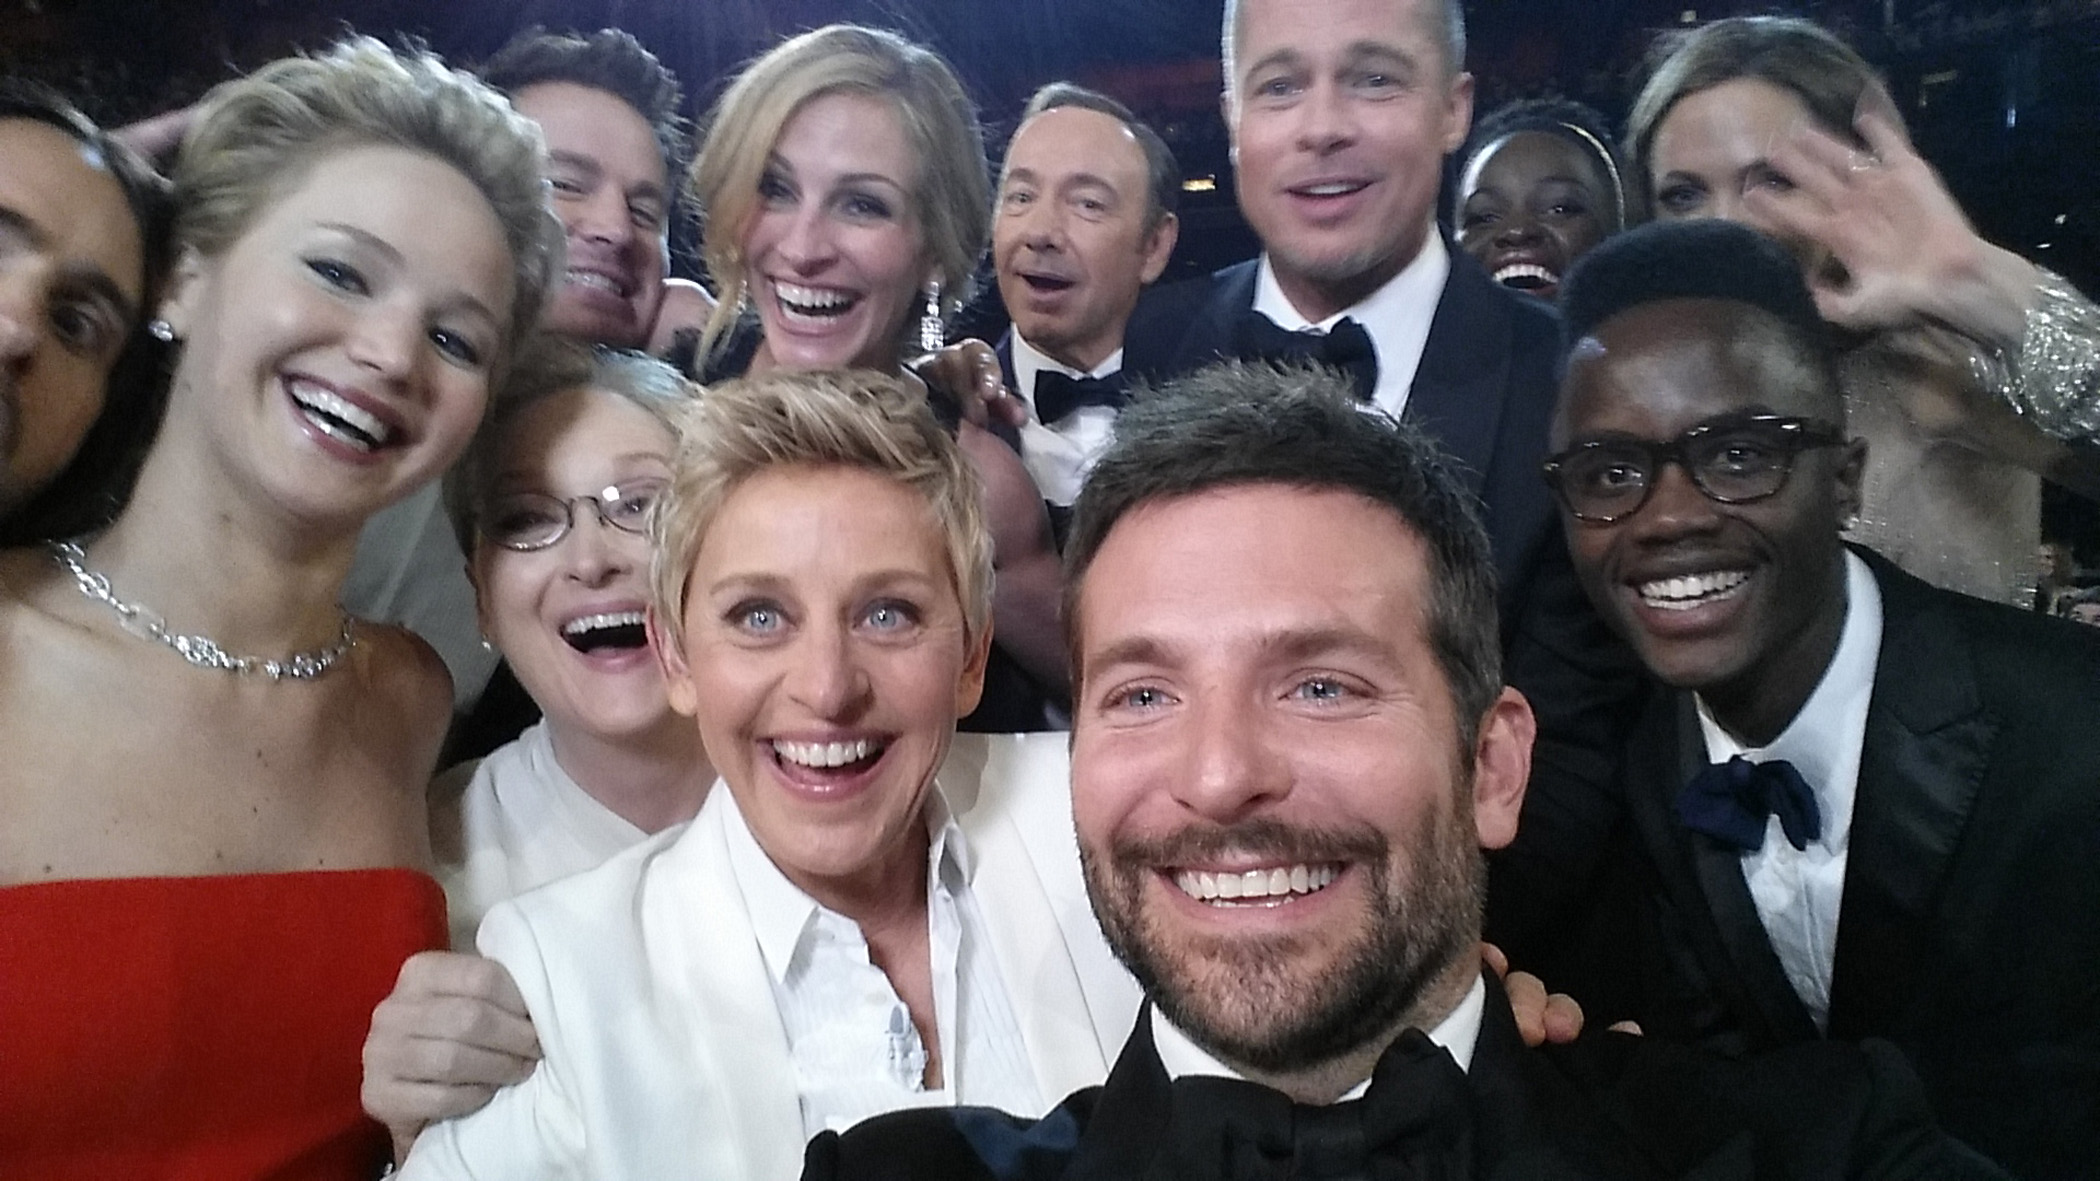 Ellen DeGeneres poses for a selfie taken with Jared Leto, Jennifer Lawrence, Channing Tatum, Meryl Streep, Julia Roberts, Kevin Spacey, Brad Pitt, Lupita Nyong'o, Angelina Jolie, Peter Nyong'o Jr. and Bradley Cooper during the 86th annual Academy Awards on March 2, 2014 in Los Angeles.